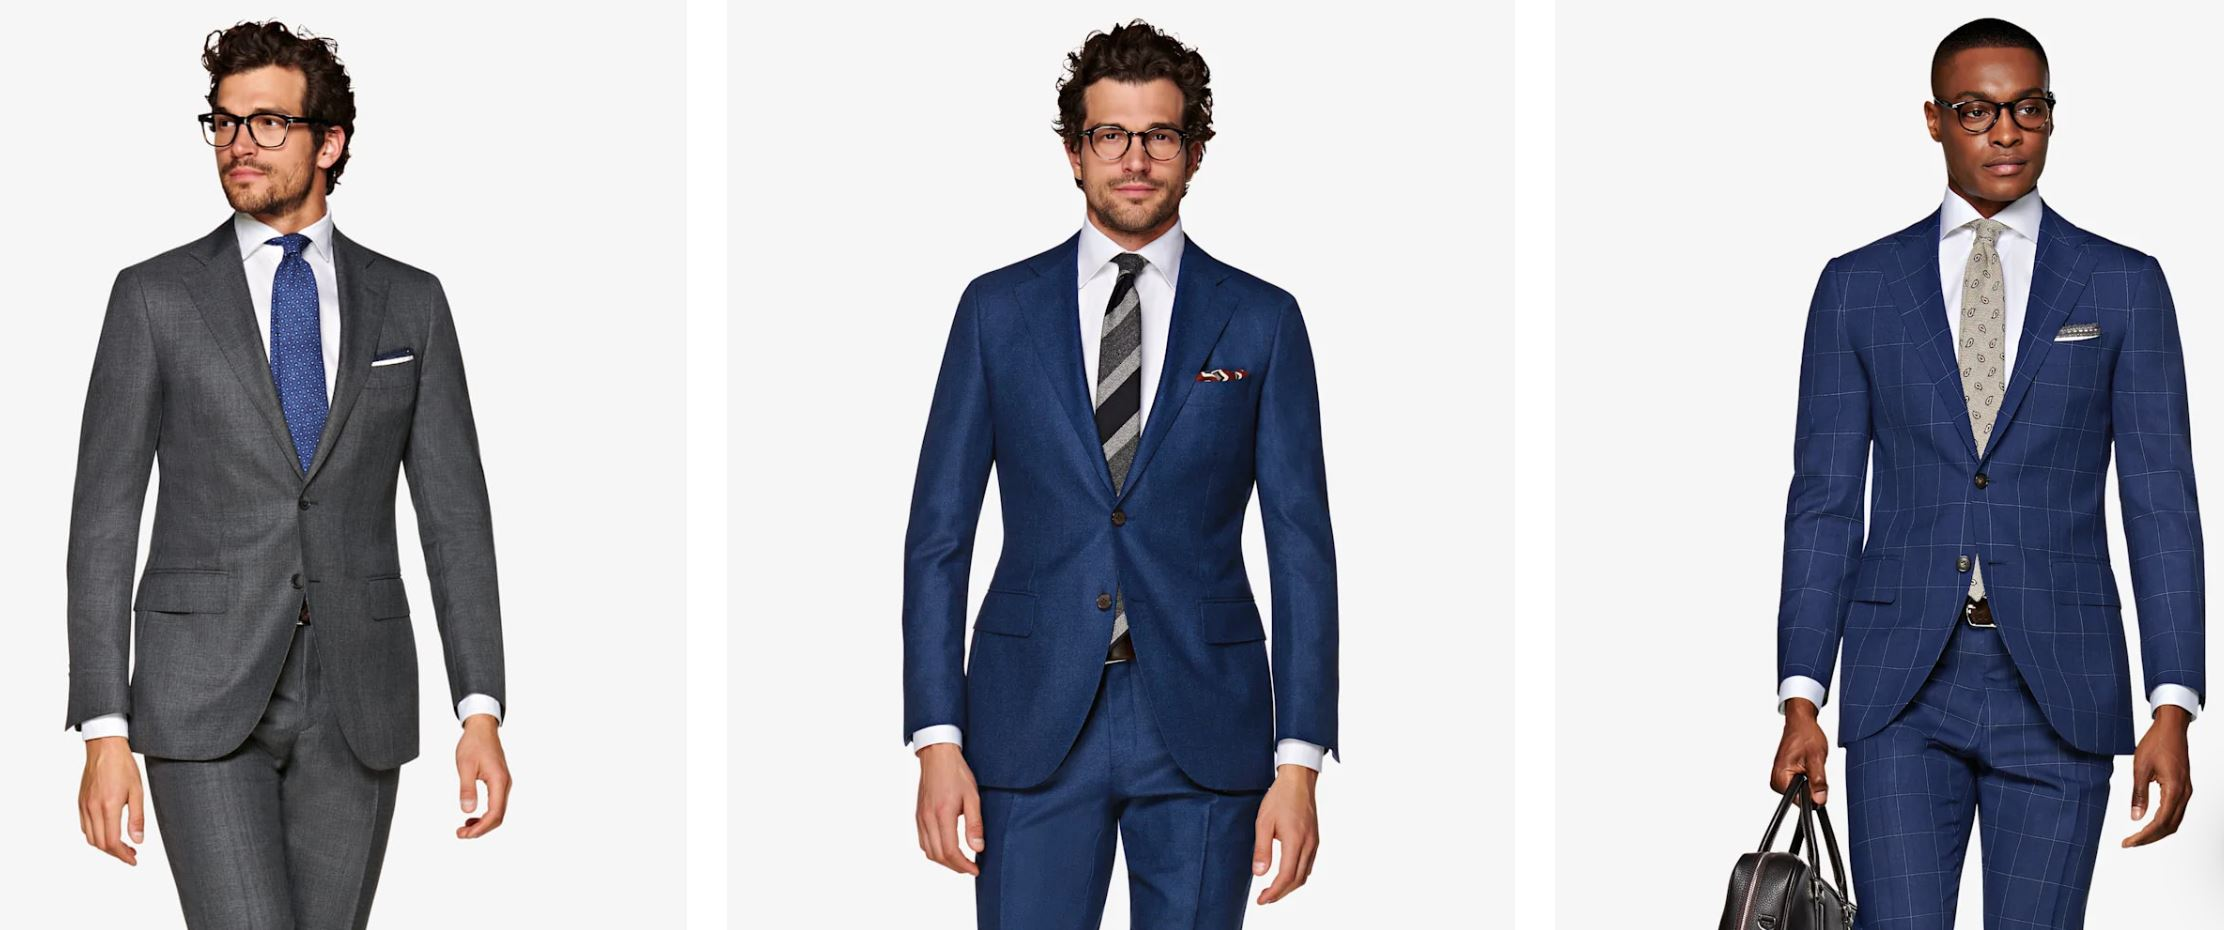 Suitsupply Suit Fits - The Lazio is a modern slim model